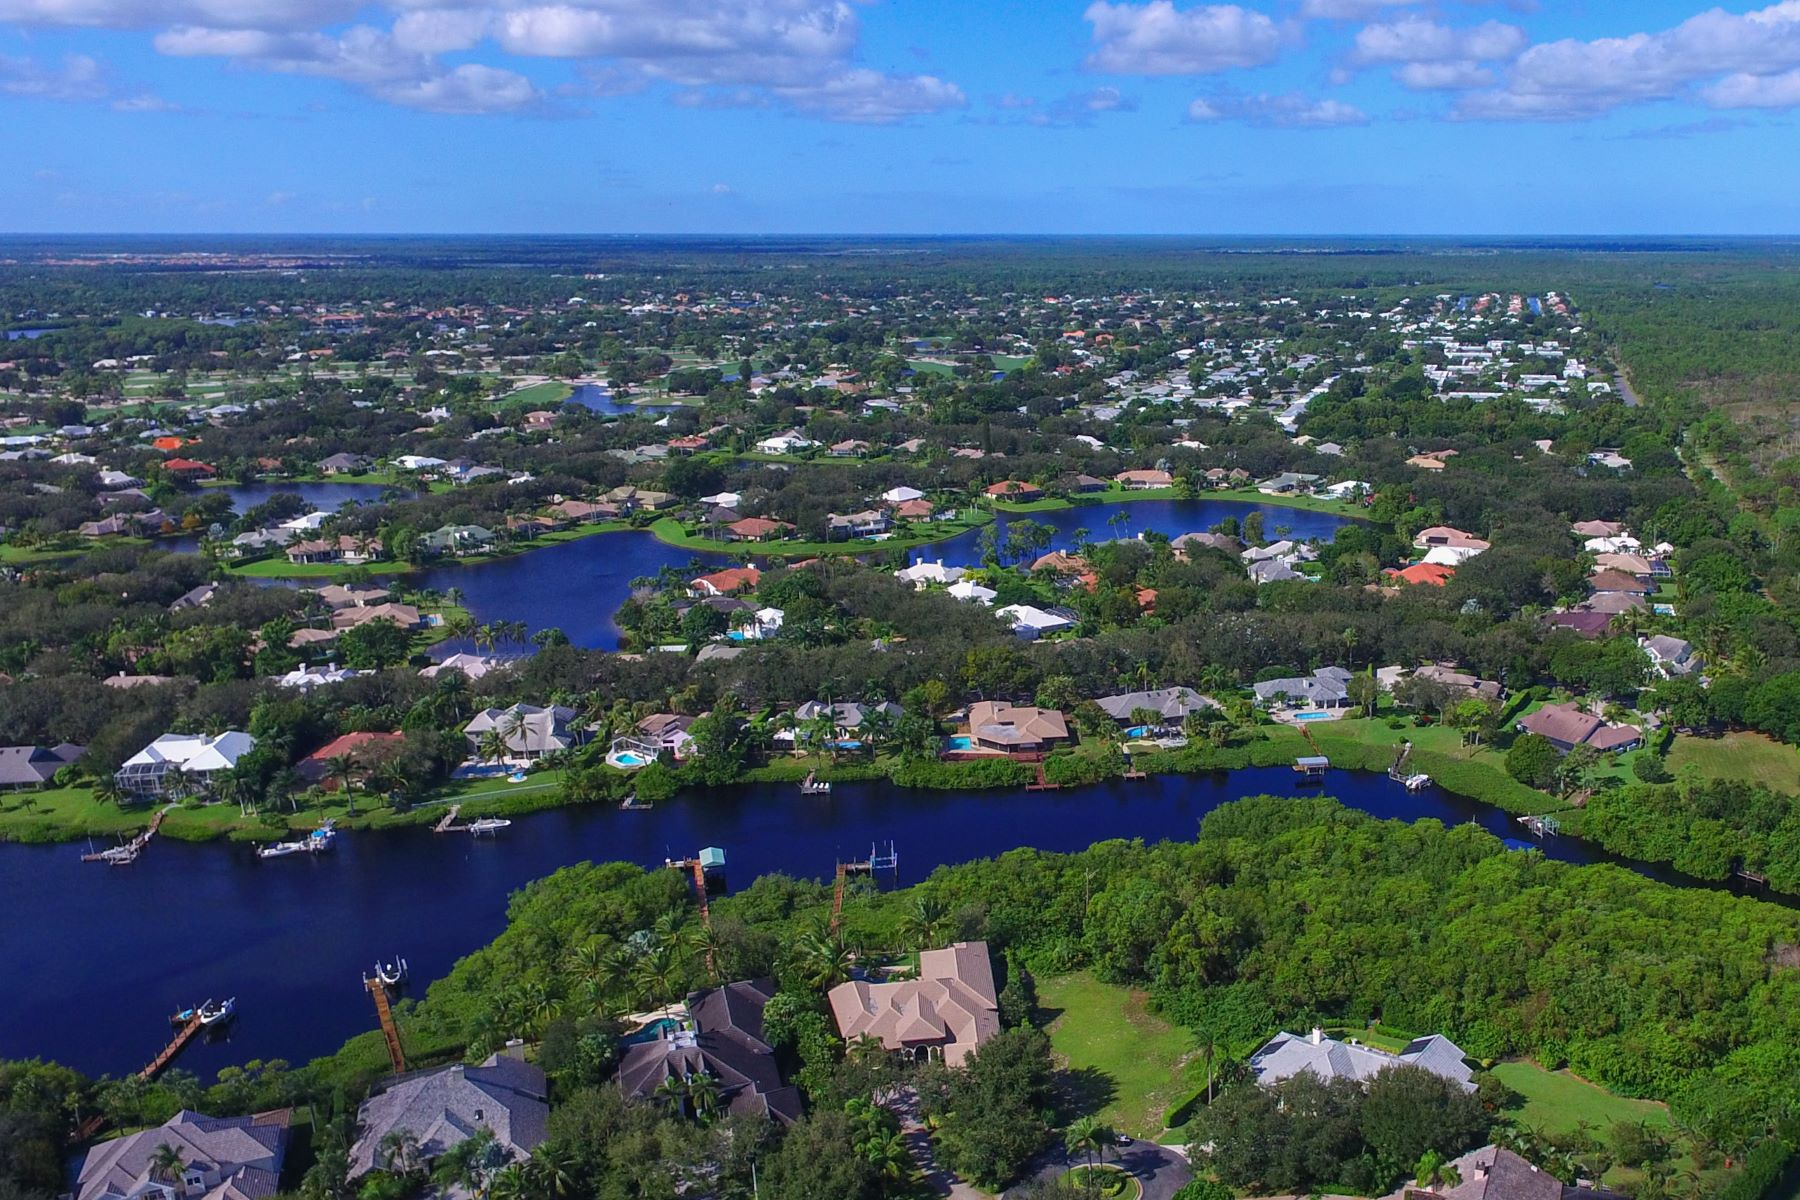 Single Family Home for Sale at 18444 SE Heritage Drive Heritage Oaks, Tequesta, Florida, 33469 United States